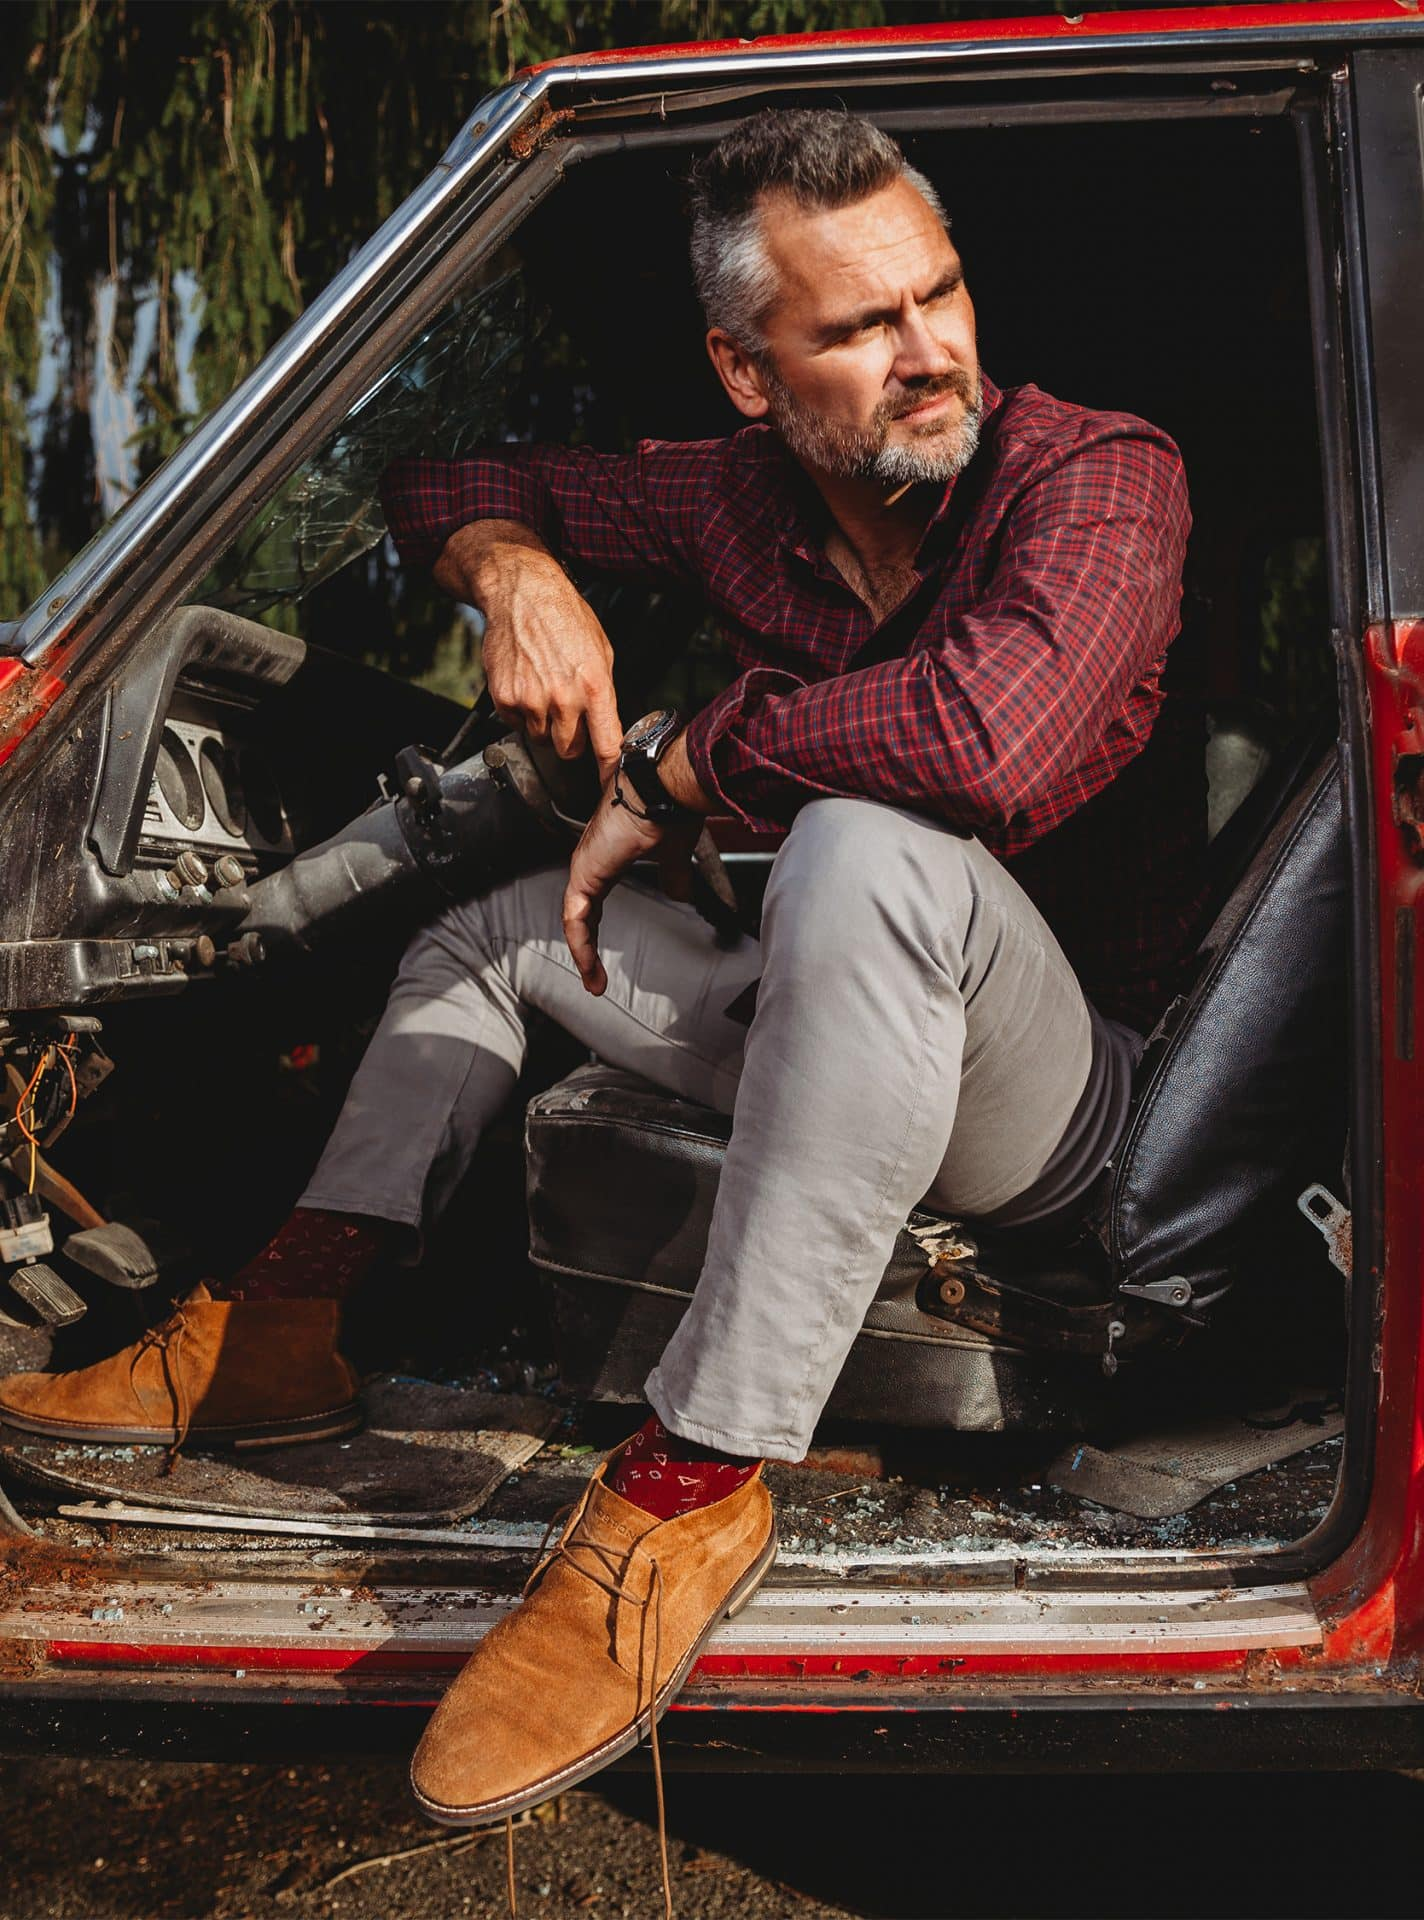 Mike Mielcarz professional photographer gray hair beard man red flannel truck open door brown shoes watch creative repute